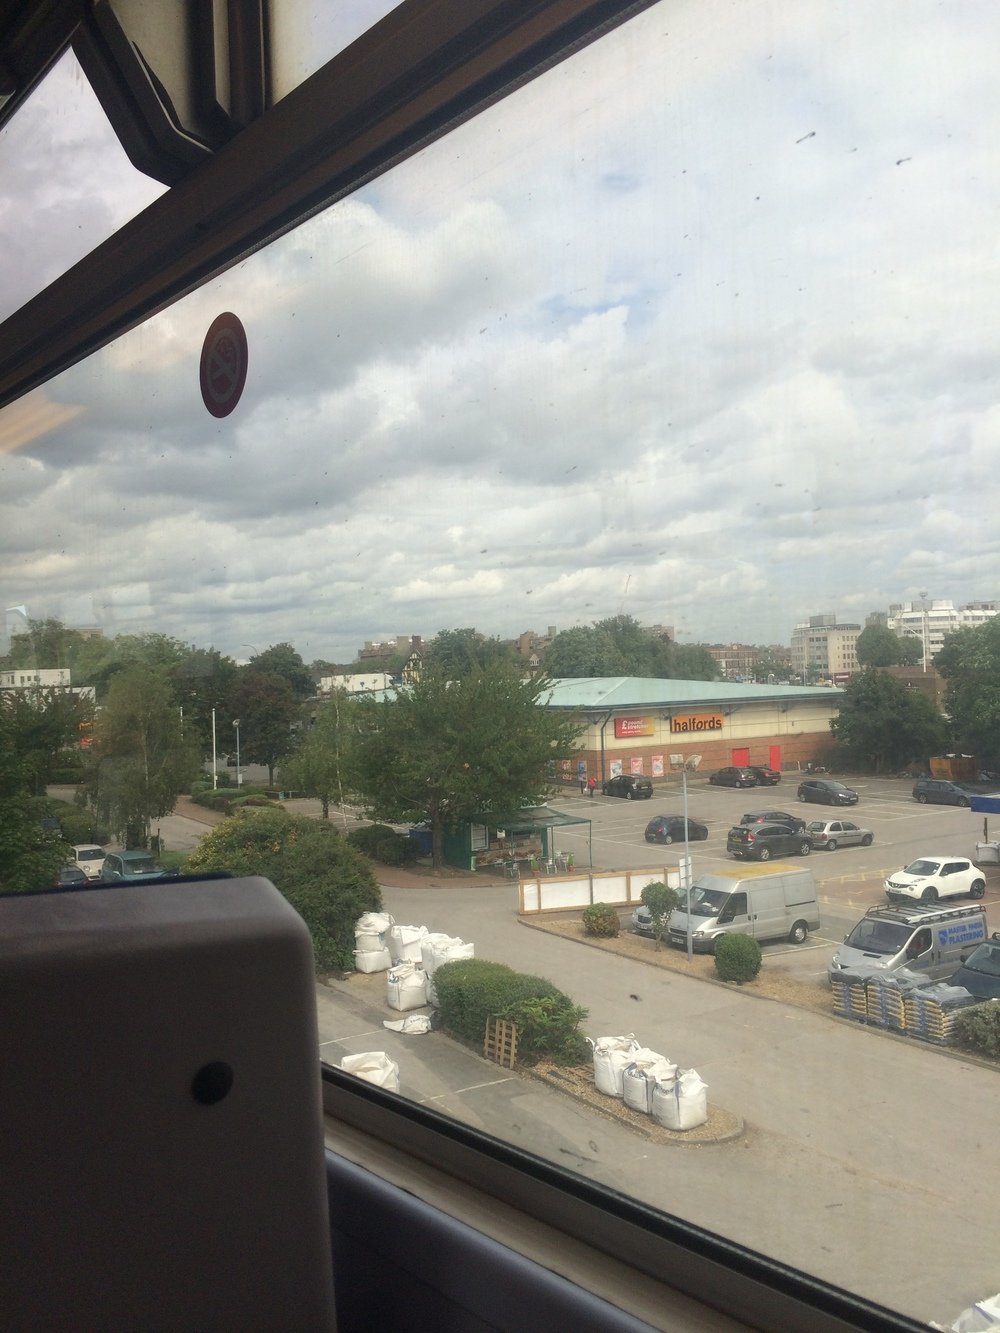 My [middle-]namesake store seen from the train. (Greater London, U.K.)